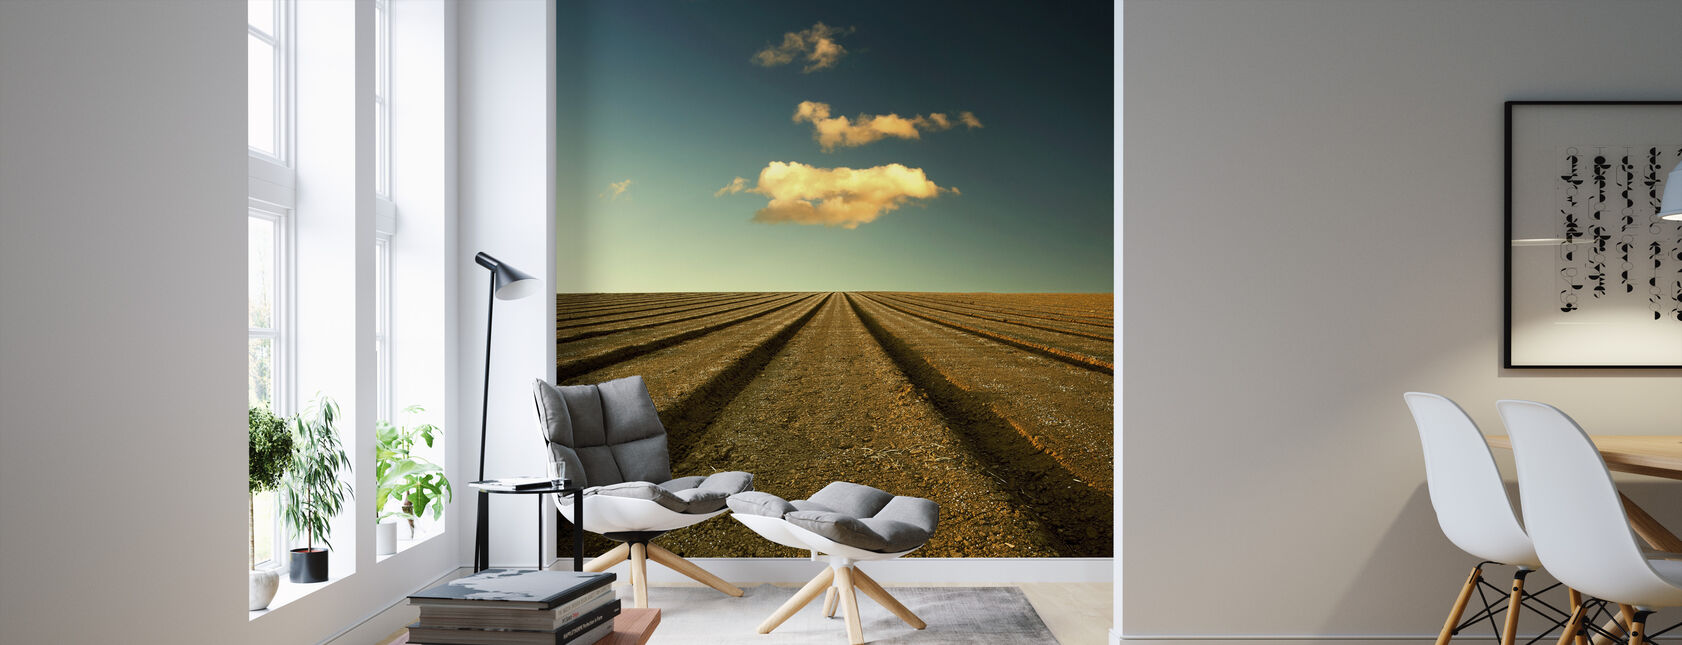 Ploughed Field and Sky - Wallpaper - Living Room